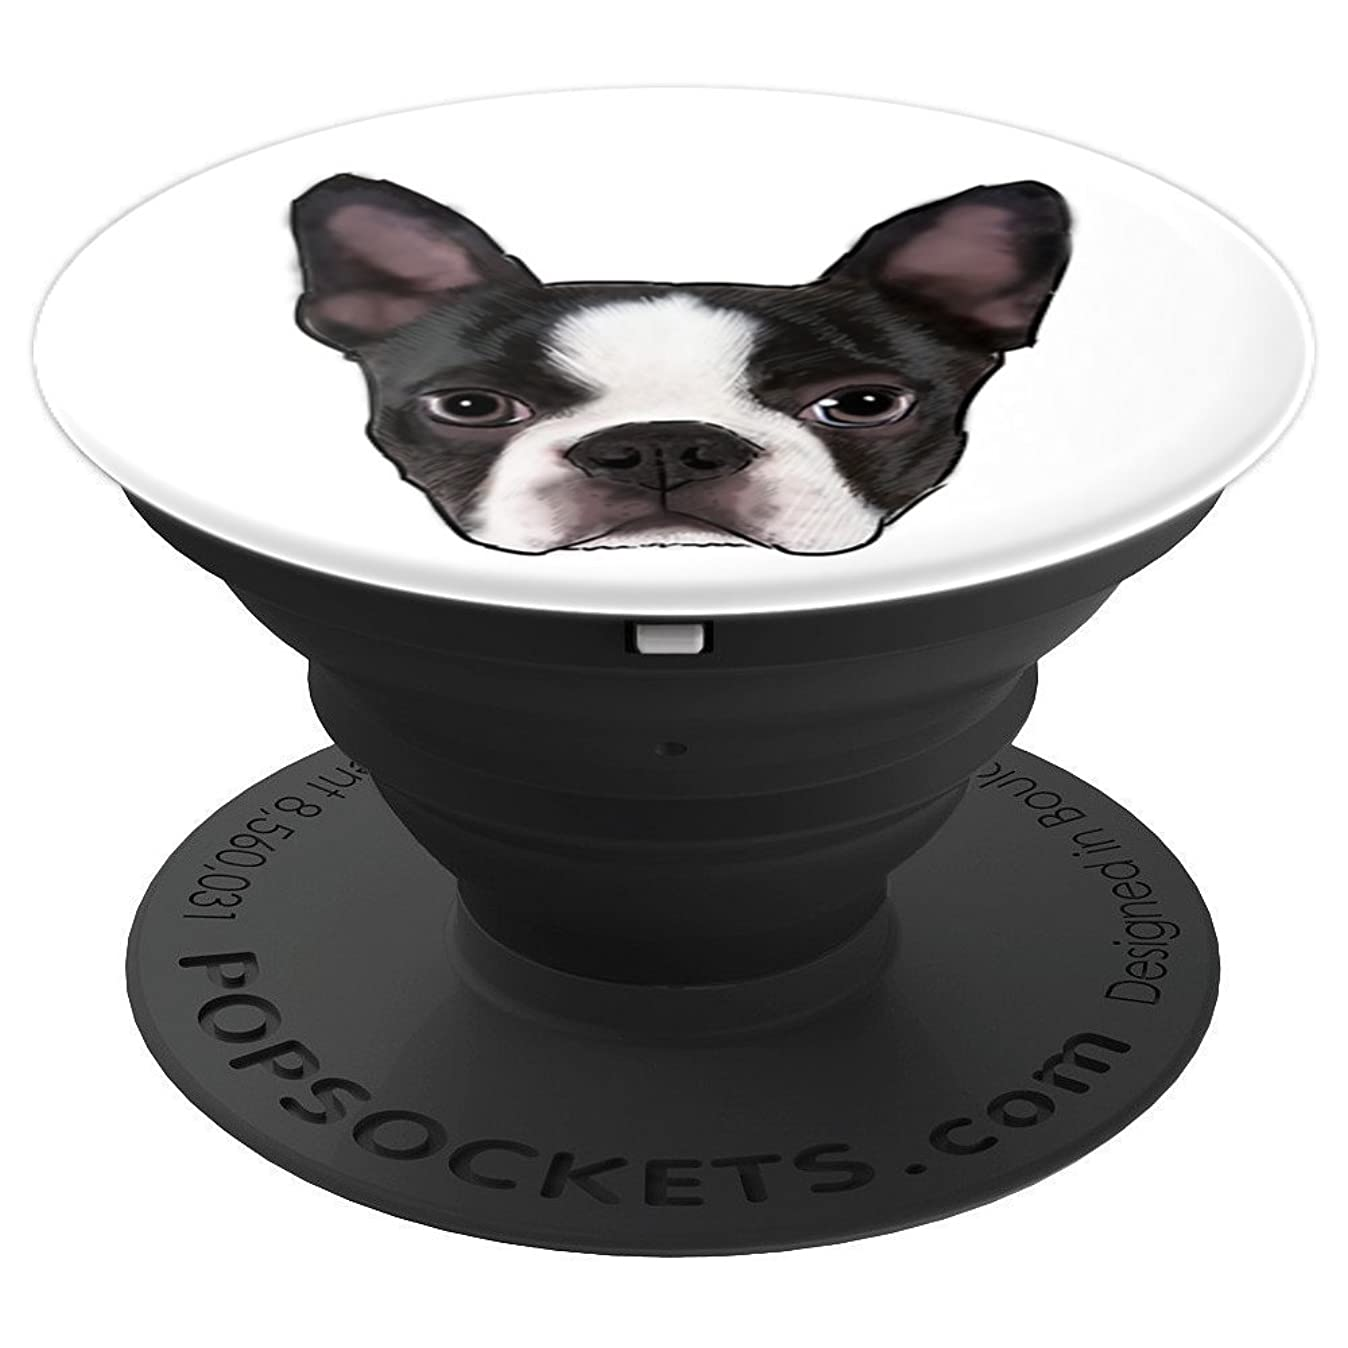 Boston Terrier Dog Lover Christmas Gift For Men Women Kids - PopSockets Grip and Stand for Phones and Tablets m9498315299